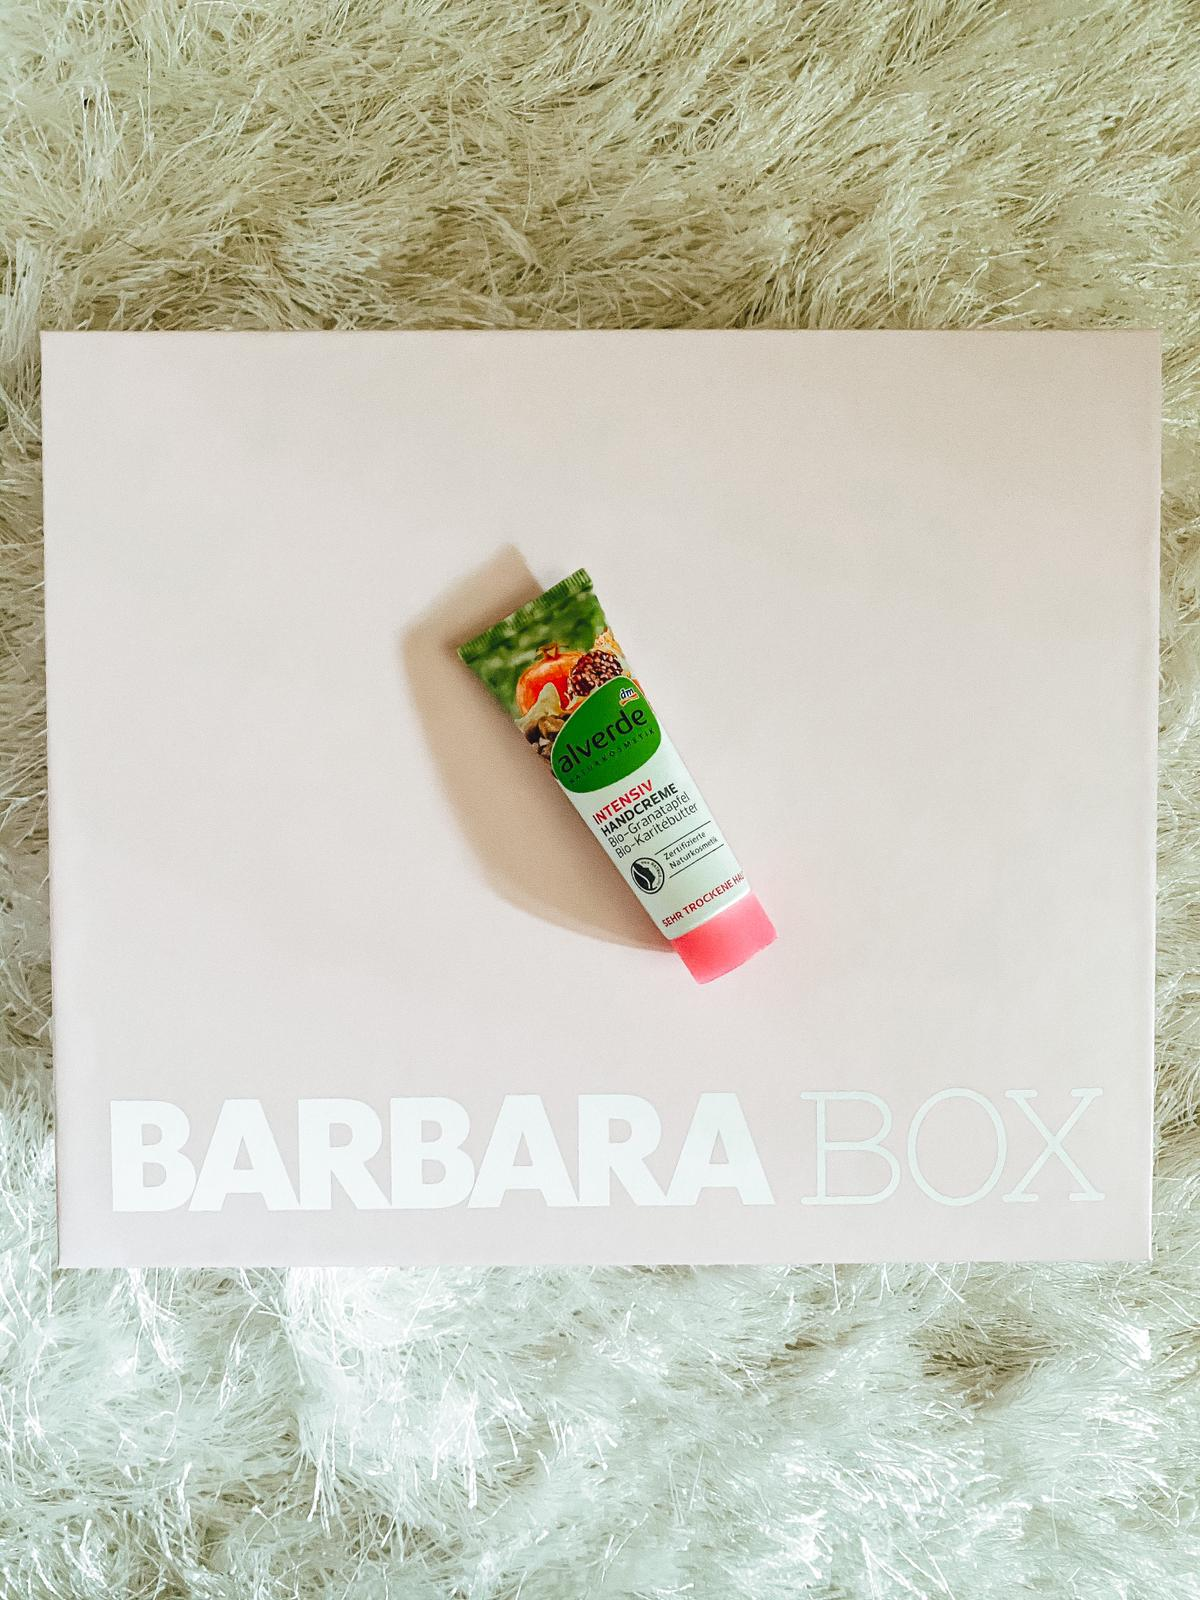 Barbara Box Summer Power - Alverde Handcreme